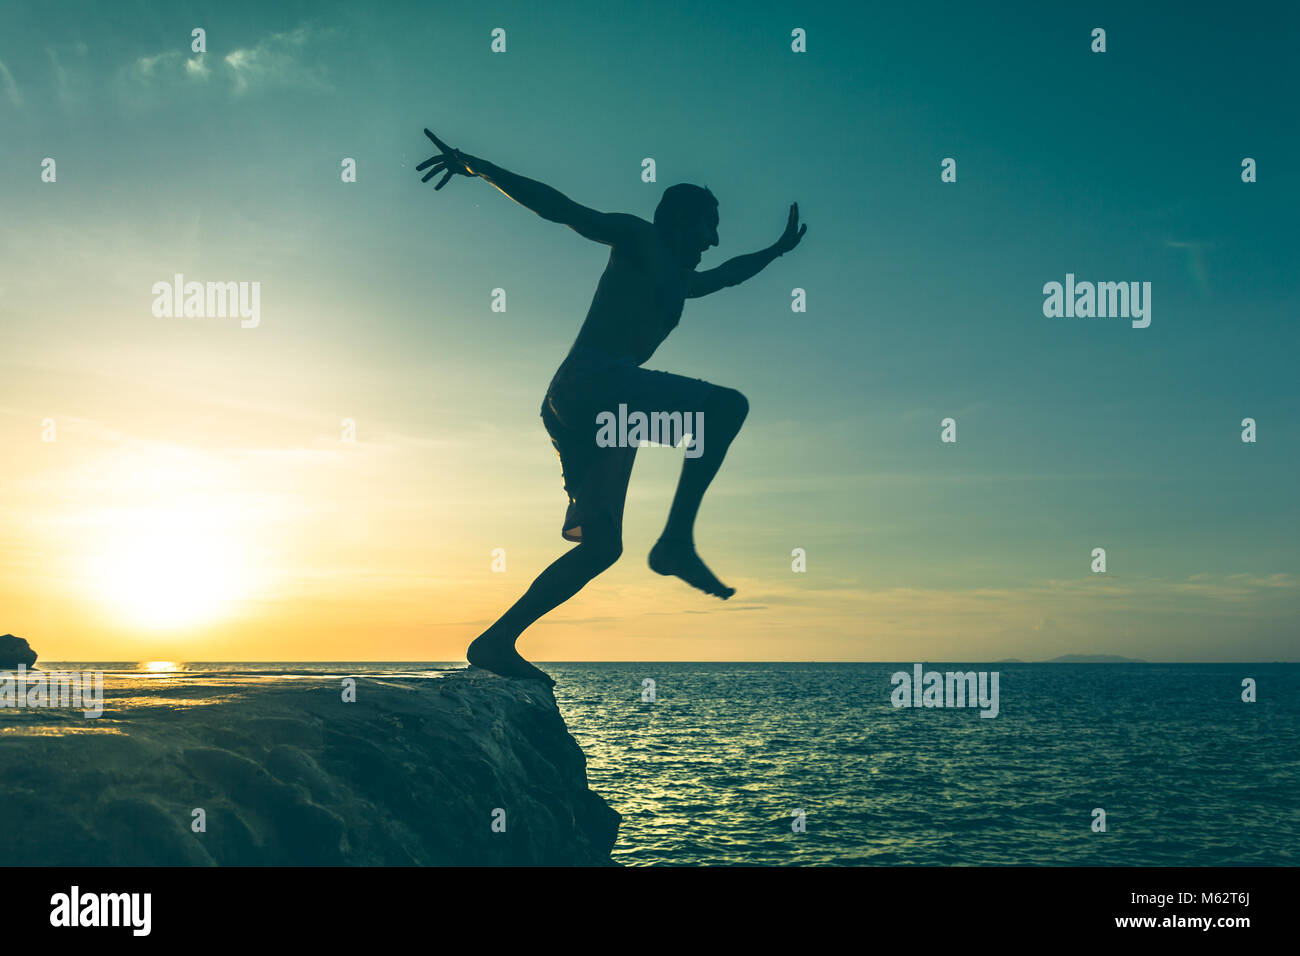 Man jumping over a cliff into the sea on sunset in Koh Phangan island, Thailand. Vintage effect. Dare, fearless - Stock Image